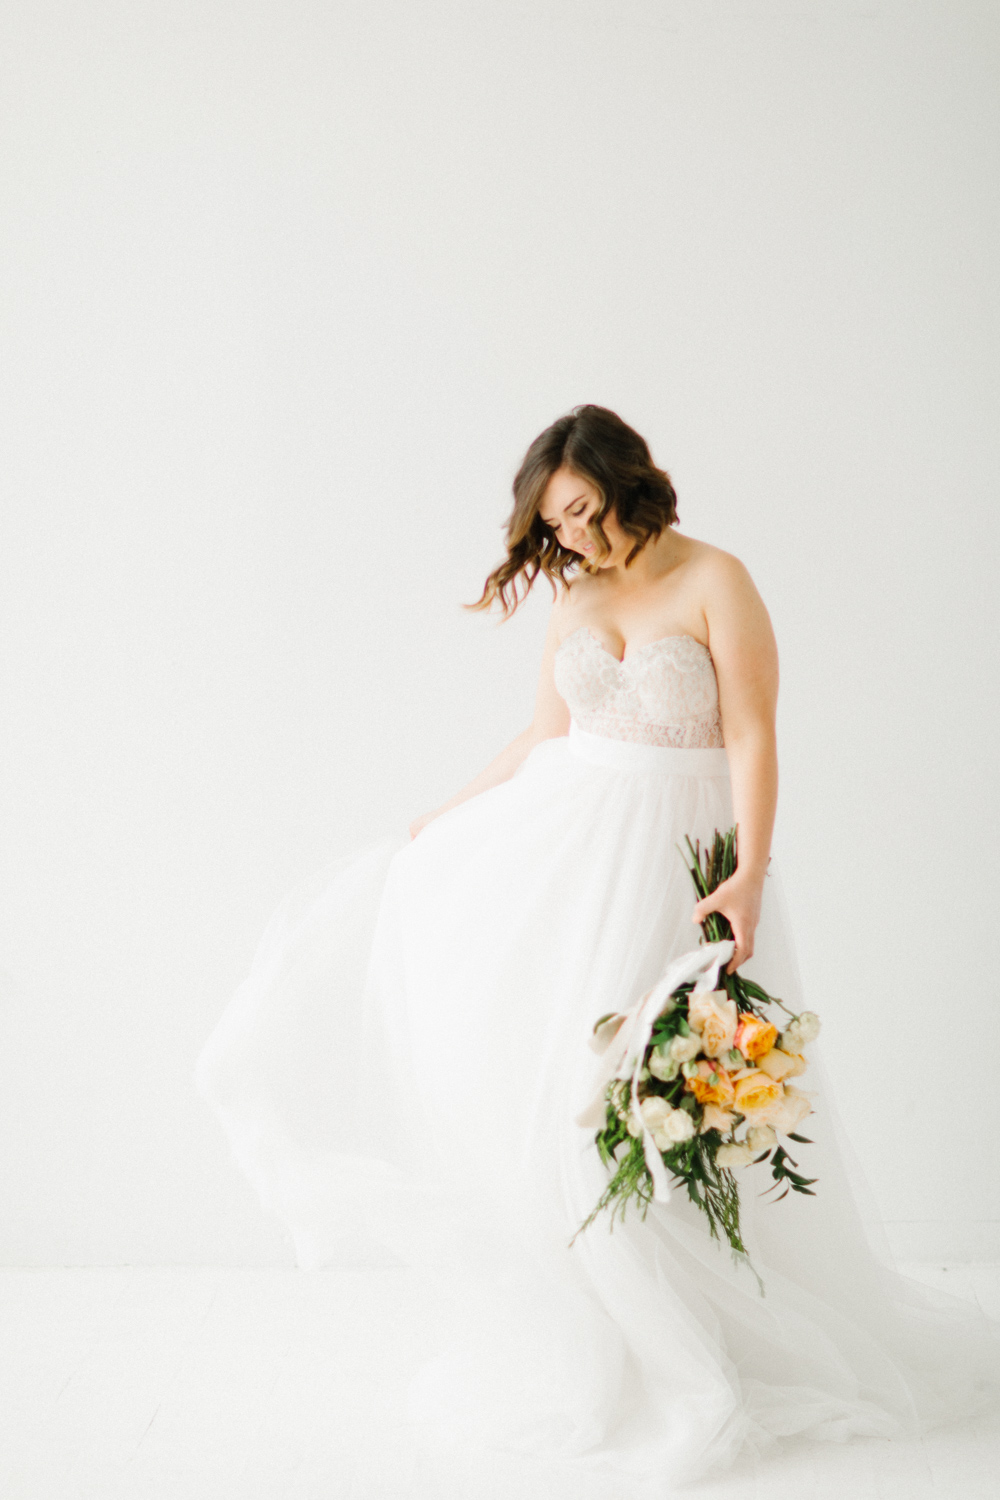 Seattle Fine Art Wedding Photographer | Seattle Downtown White Studio Bridal Session | Stunning Wedding Bouquet | Seattle Bride | Seattle Wedding | Photography Studio Space | Emma Rose Company Wedding Photography-8.jpg